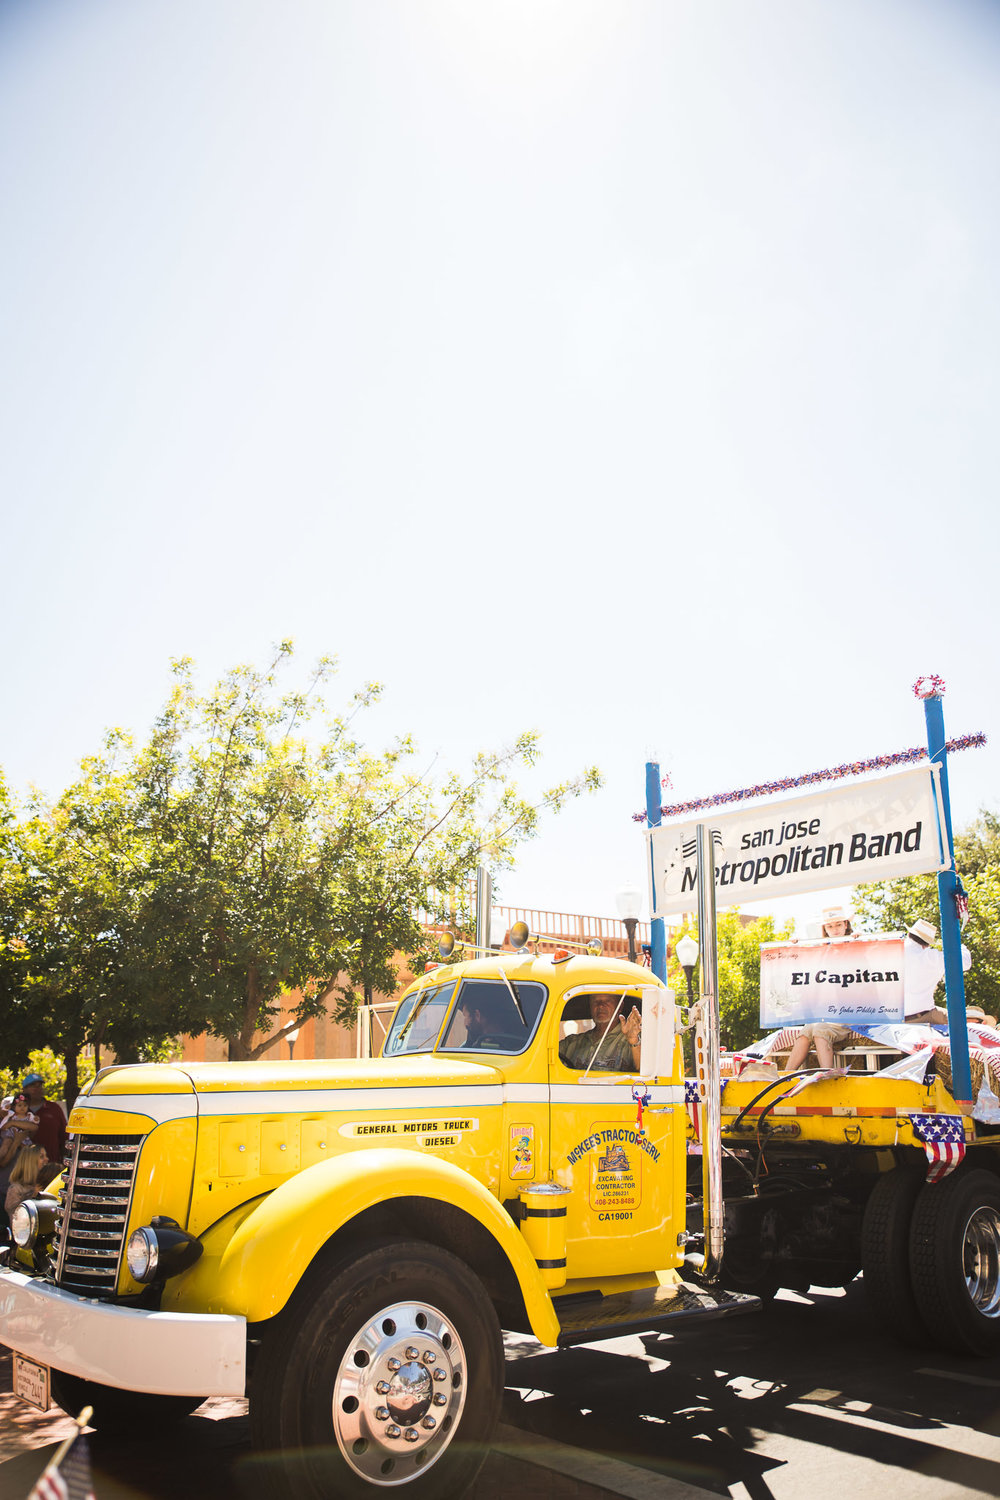 Archer_Inspired_Photography_Morgan_Hill_California_4th_of_july_parade-90.jpg